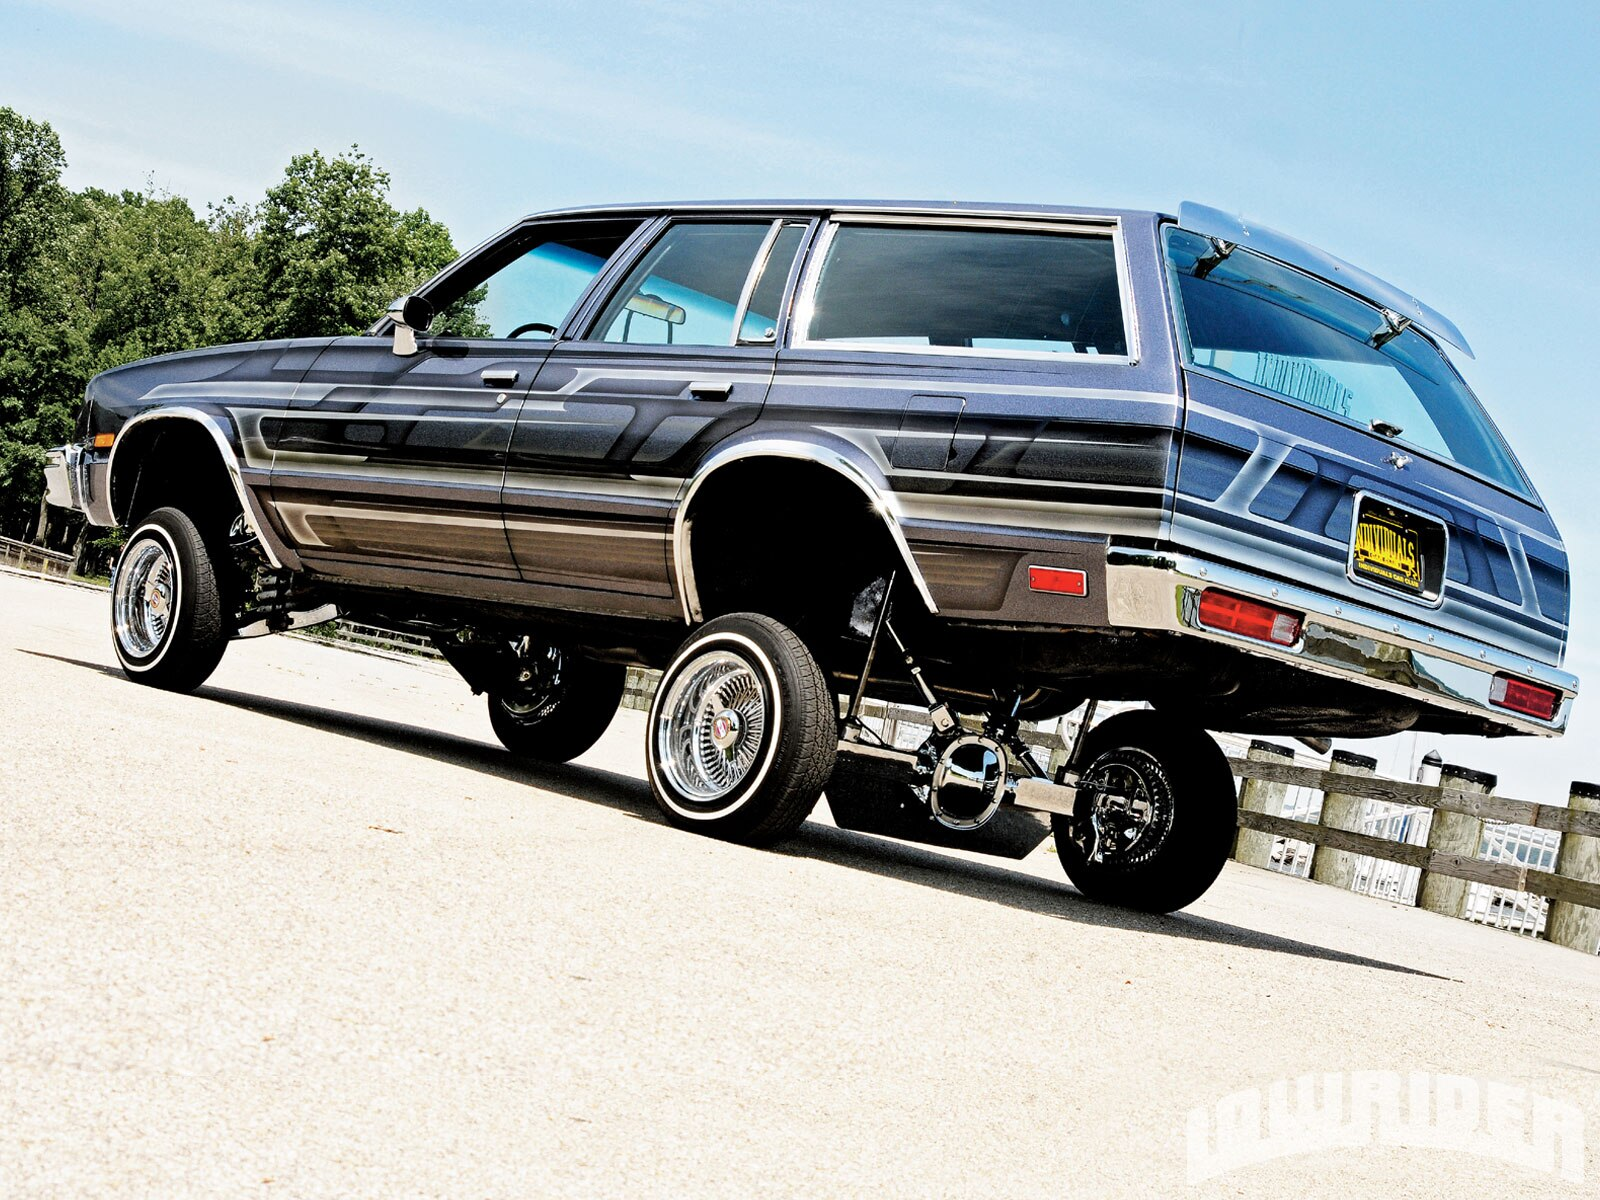 1005_lrmp_01_o-1982_chevrolet_malibu_classic_station_wagon-left_rear2